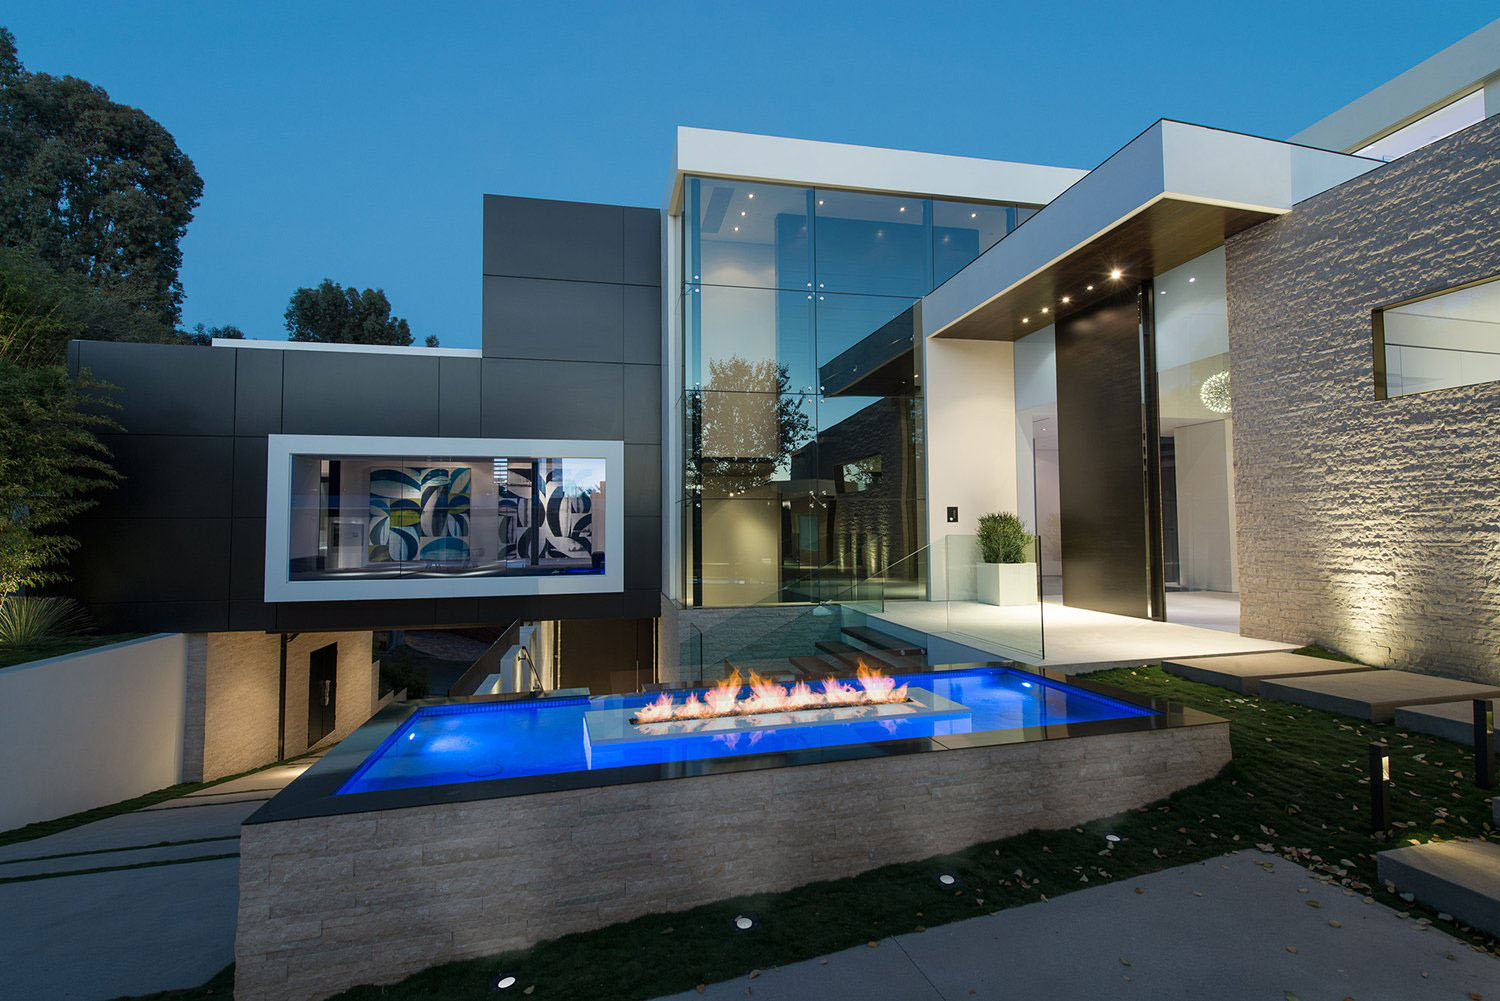 World class beverly hills contemporary luxury home with for Luxury homes architecture design